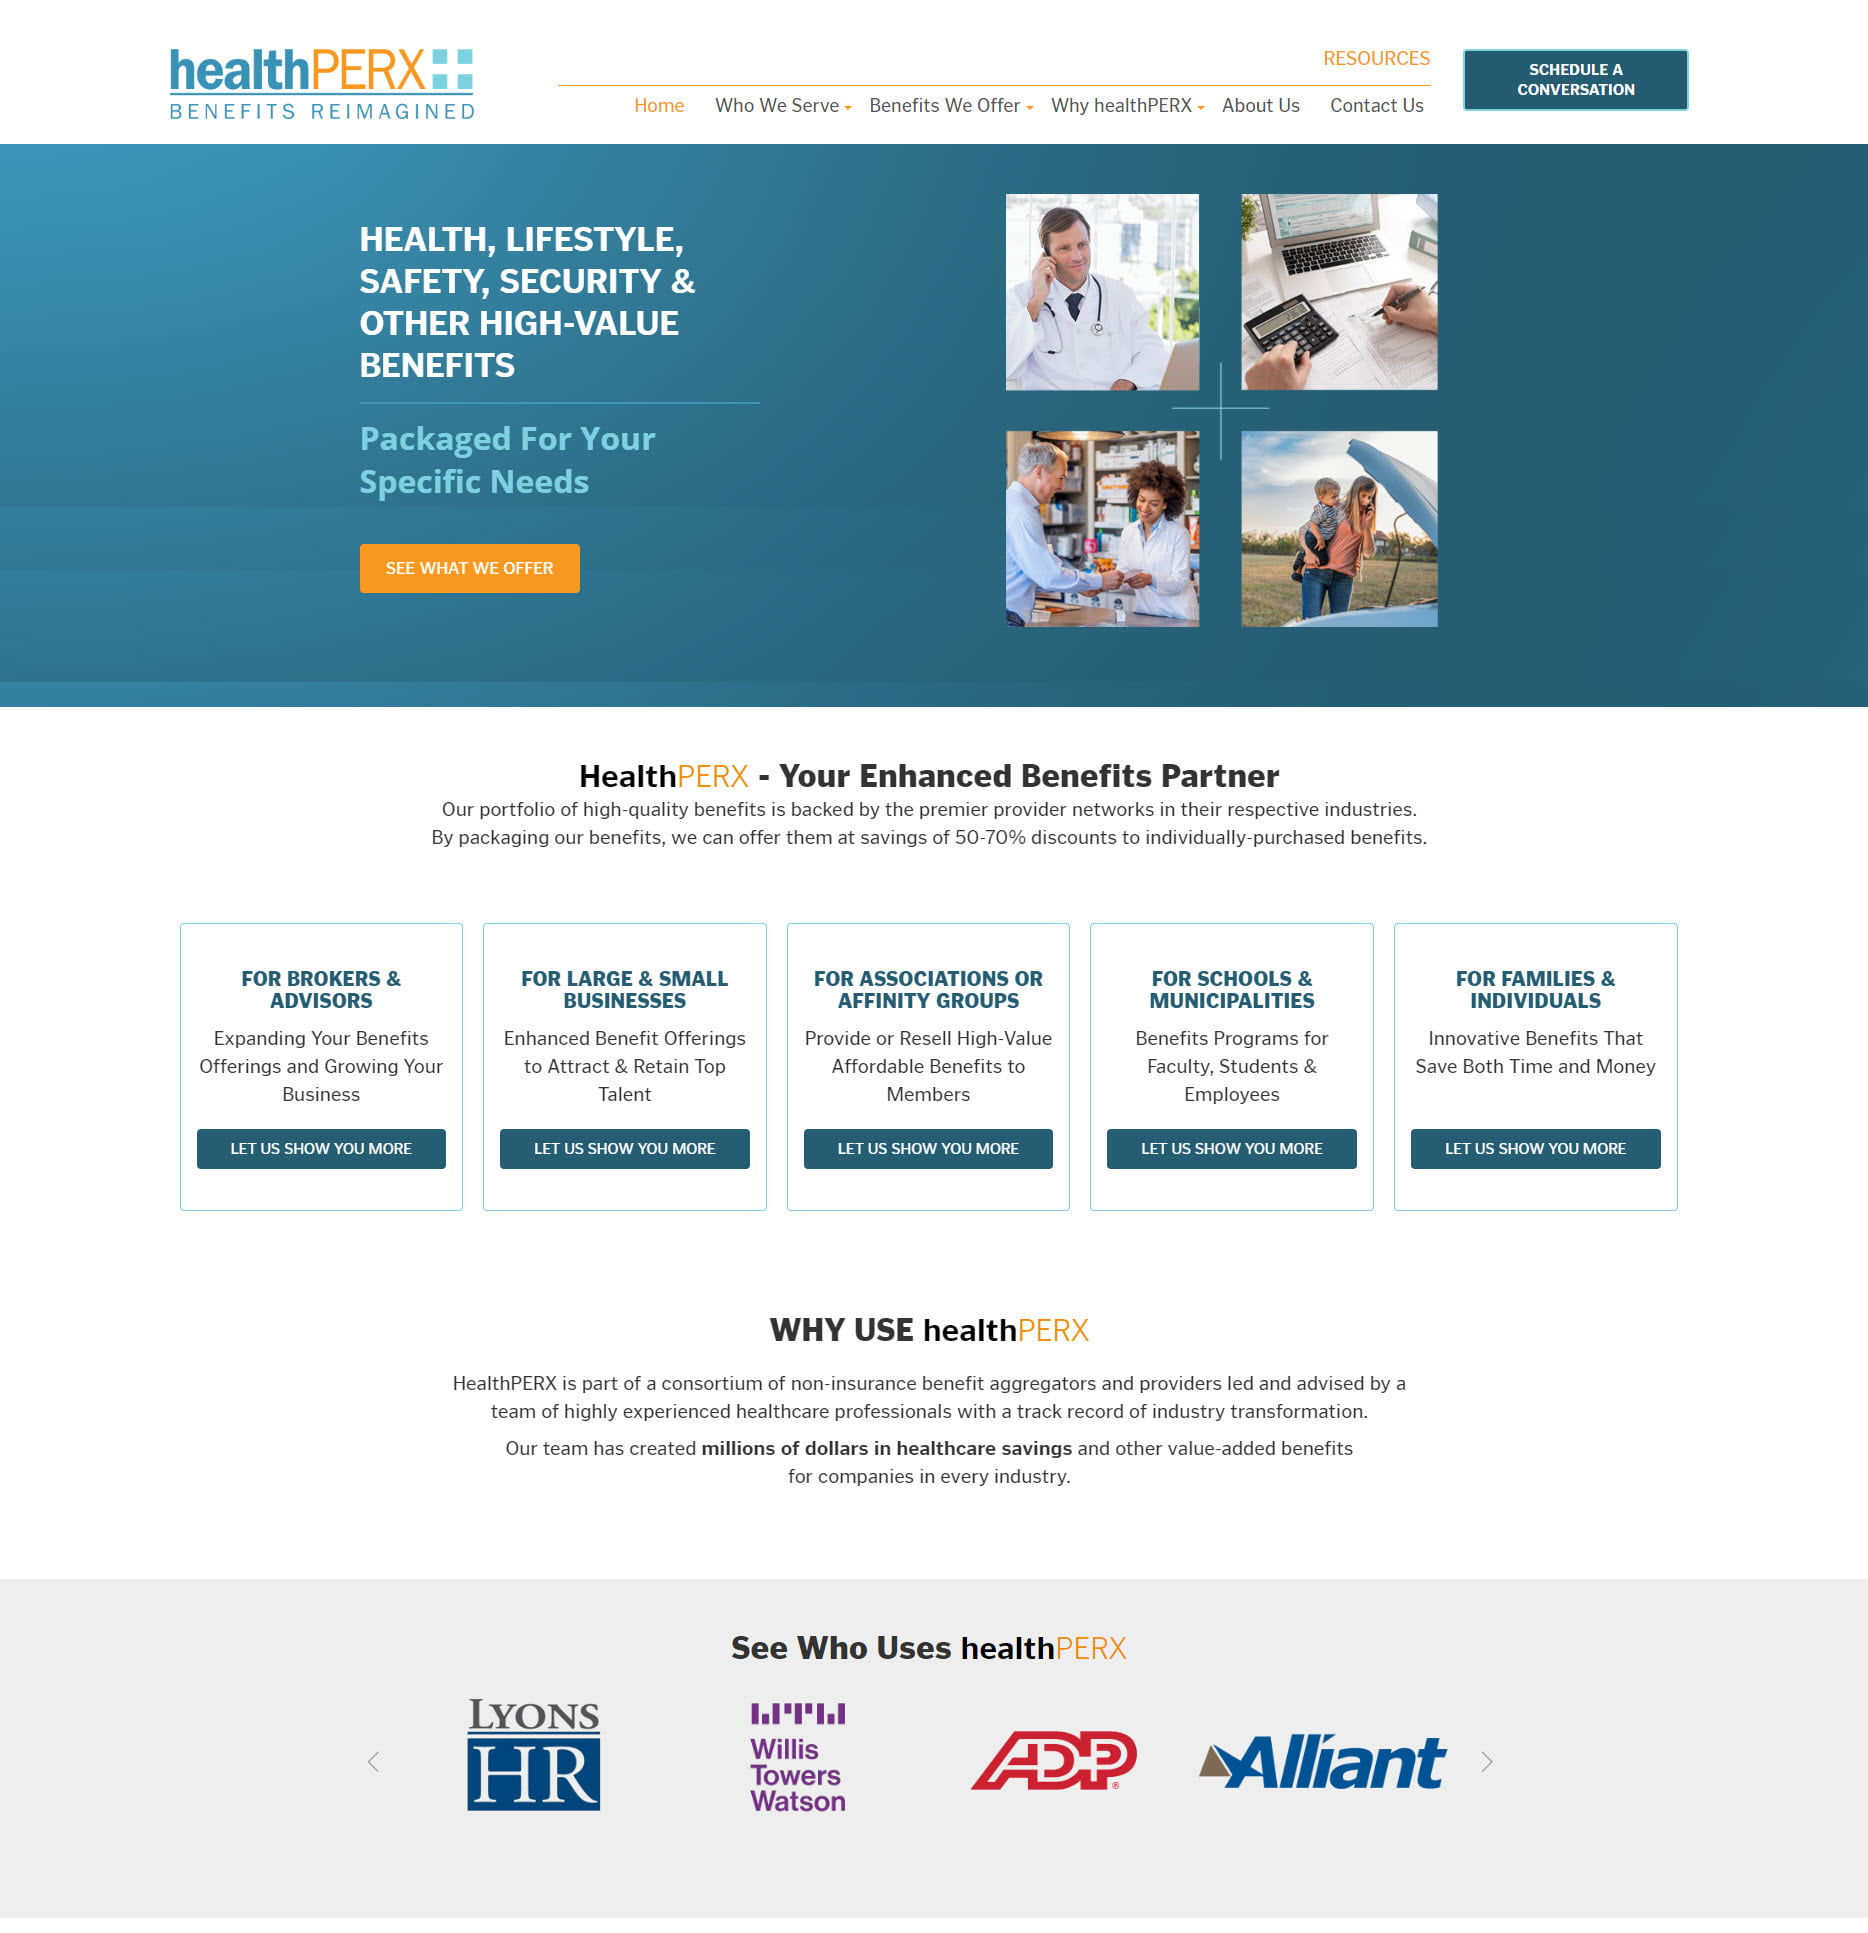 screenshot of healthperx home page design